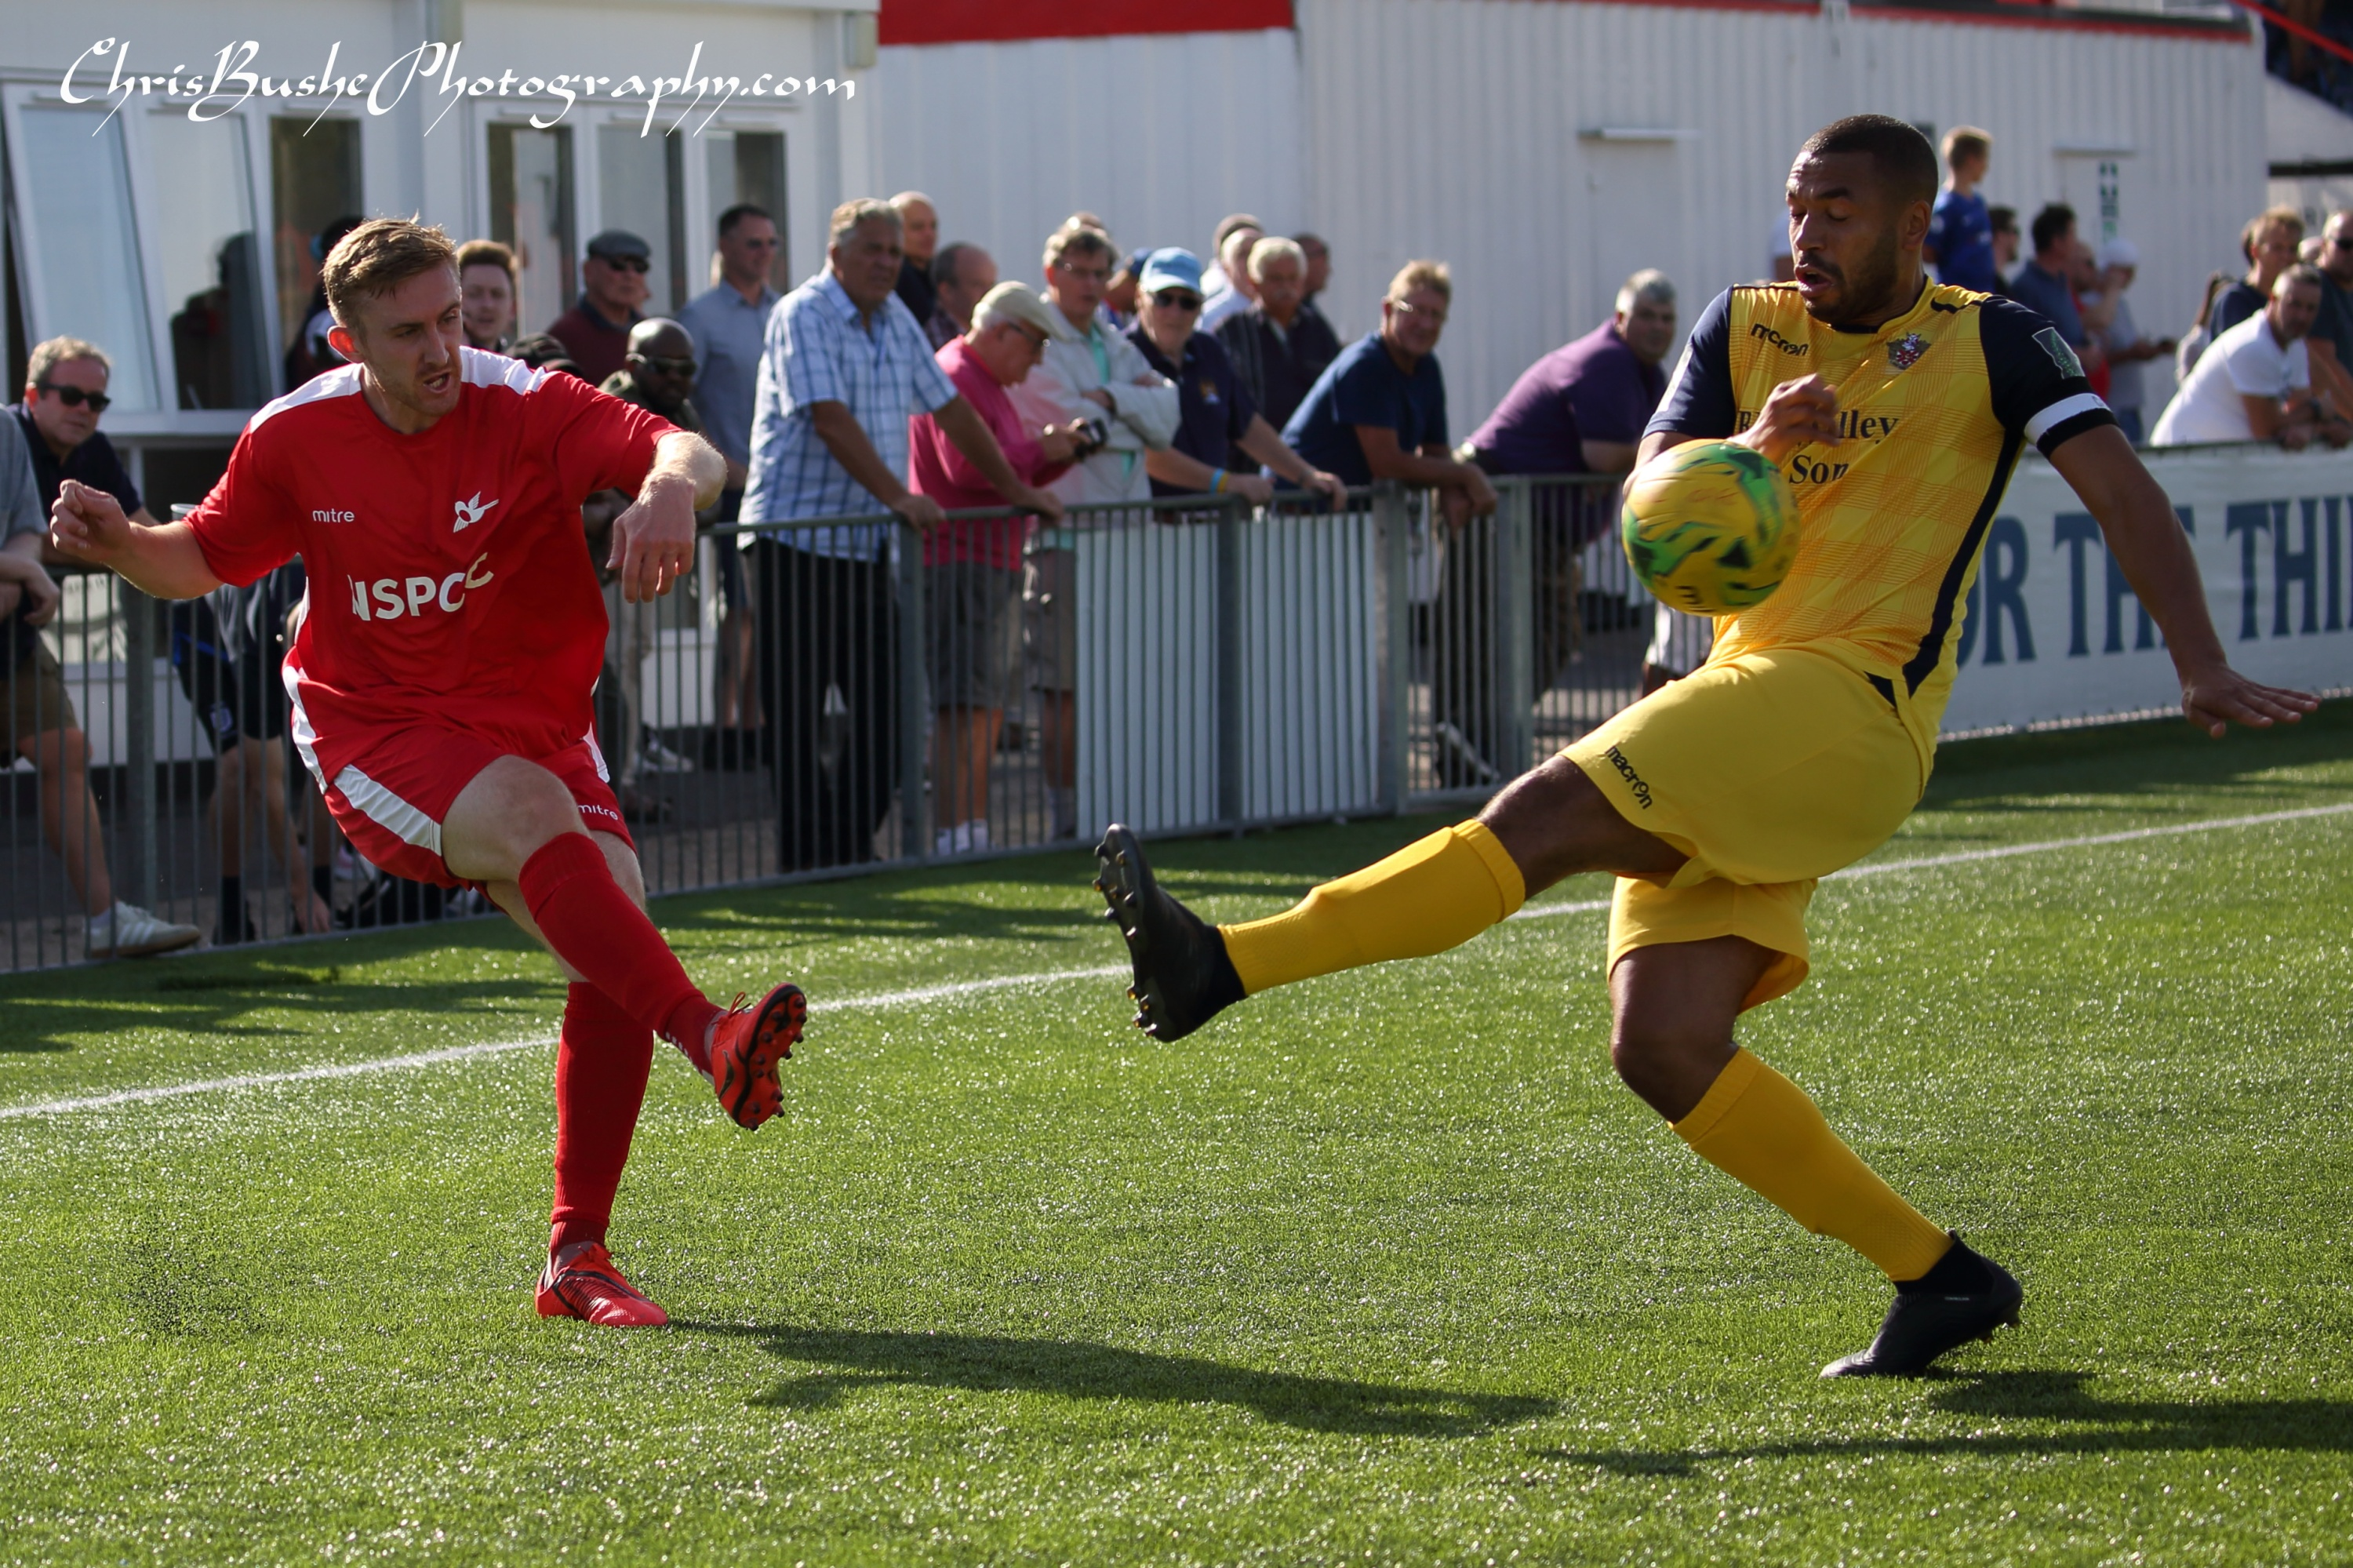 Luke Read of Carshalton crossing from the right wing in first half